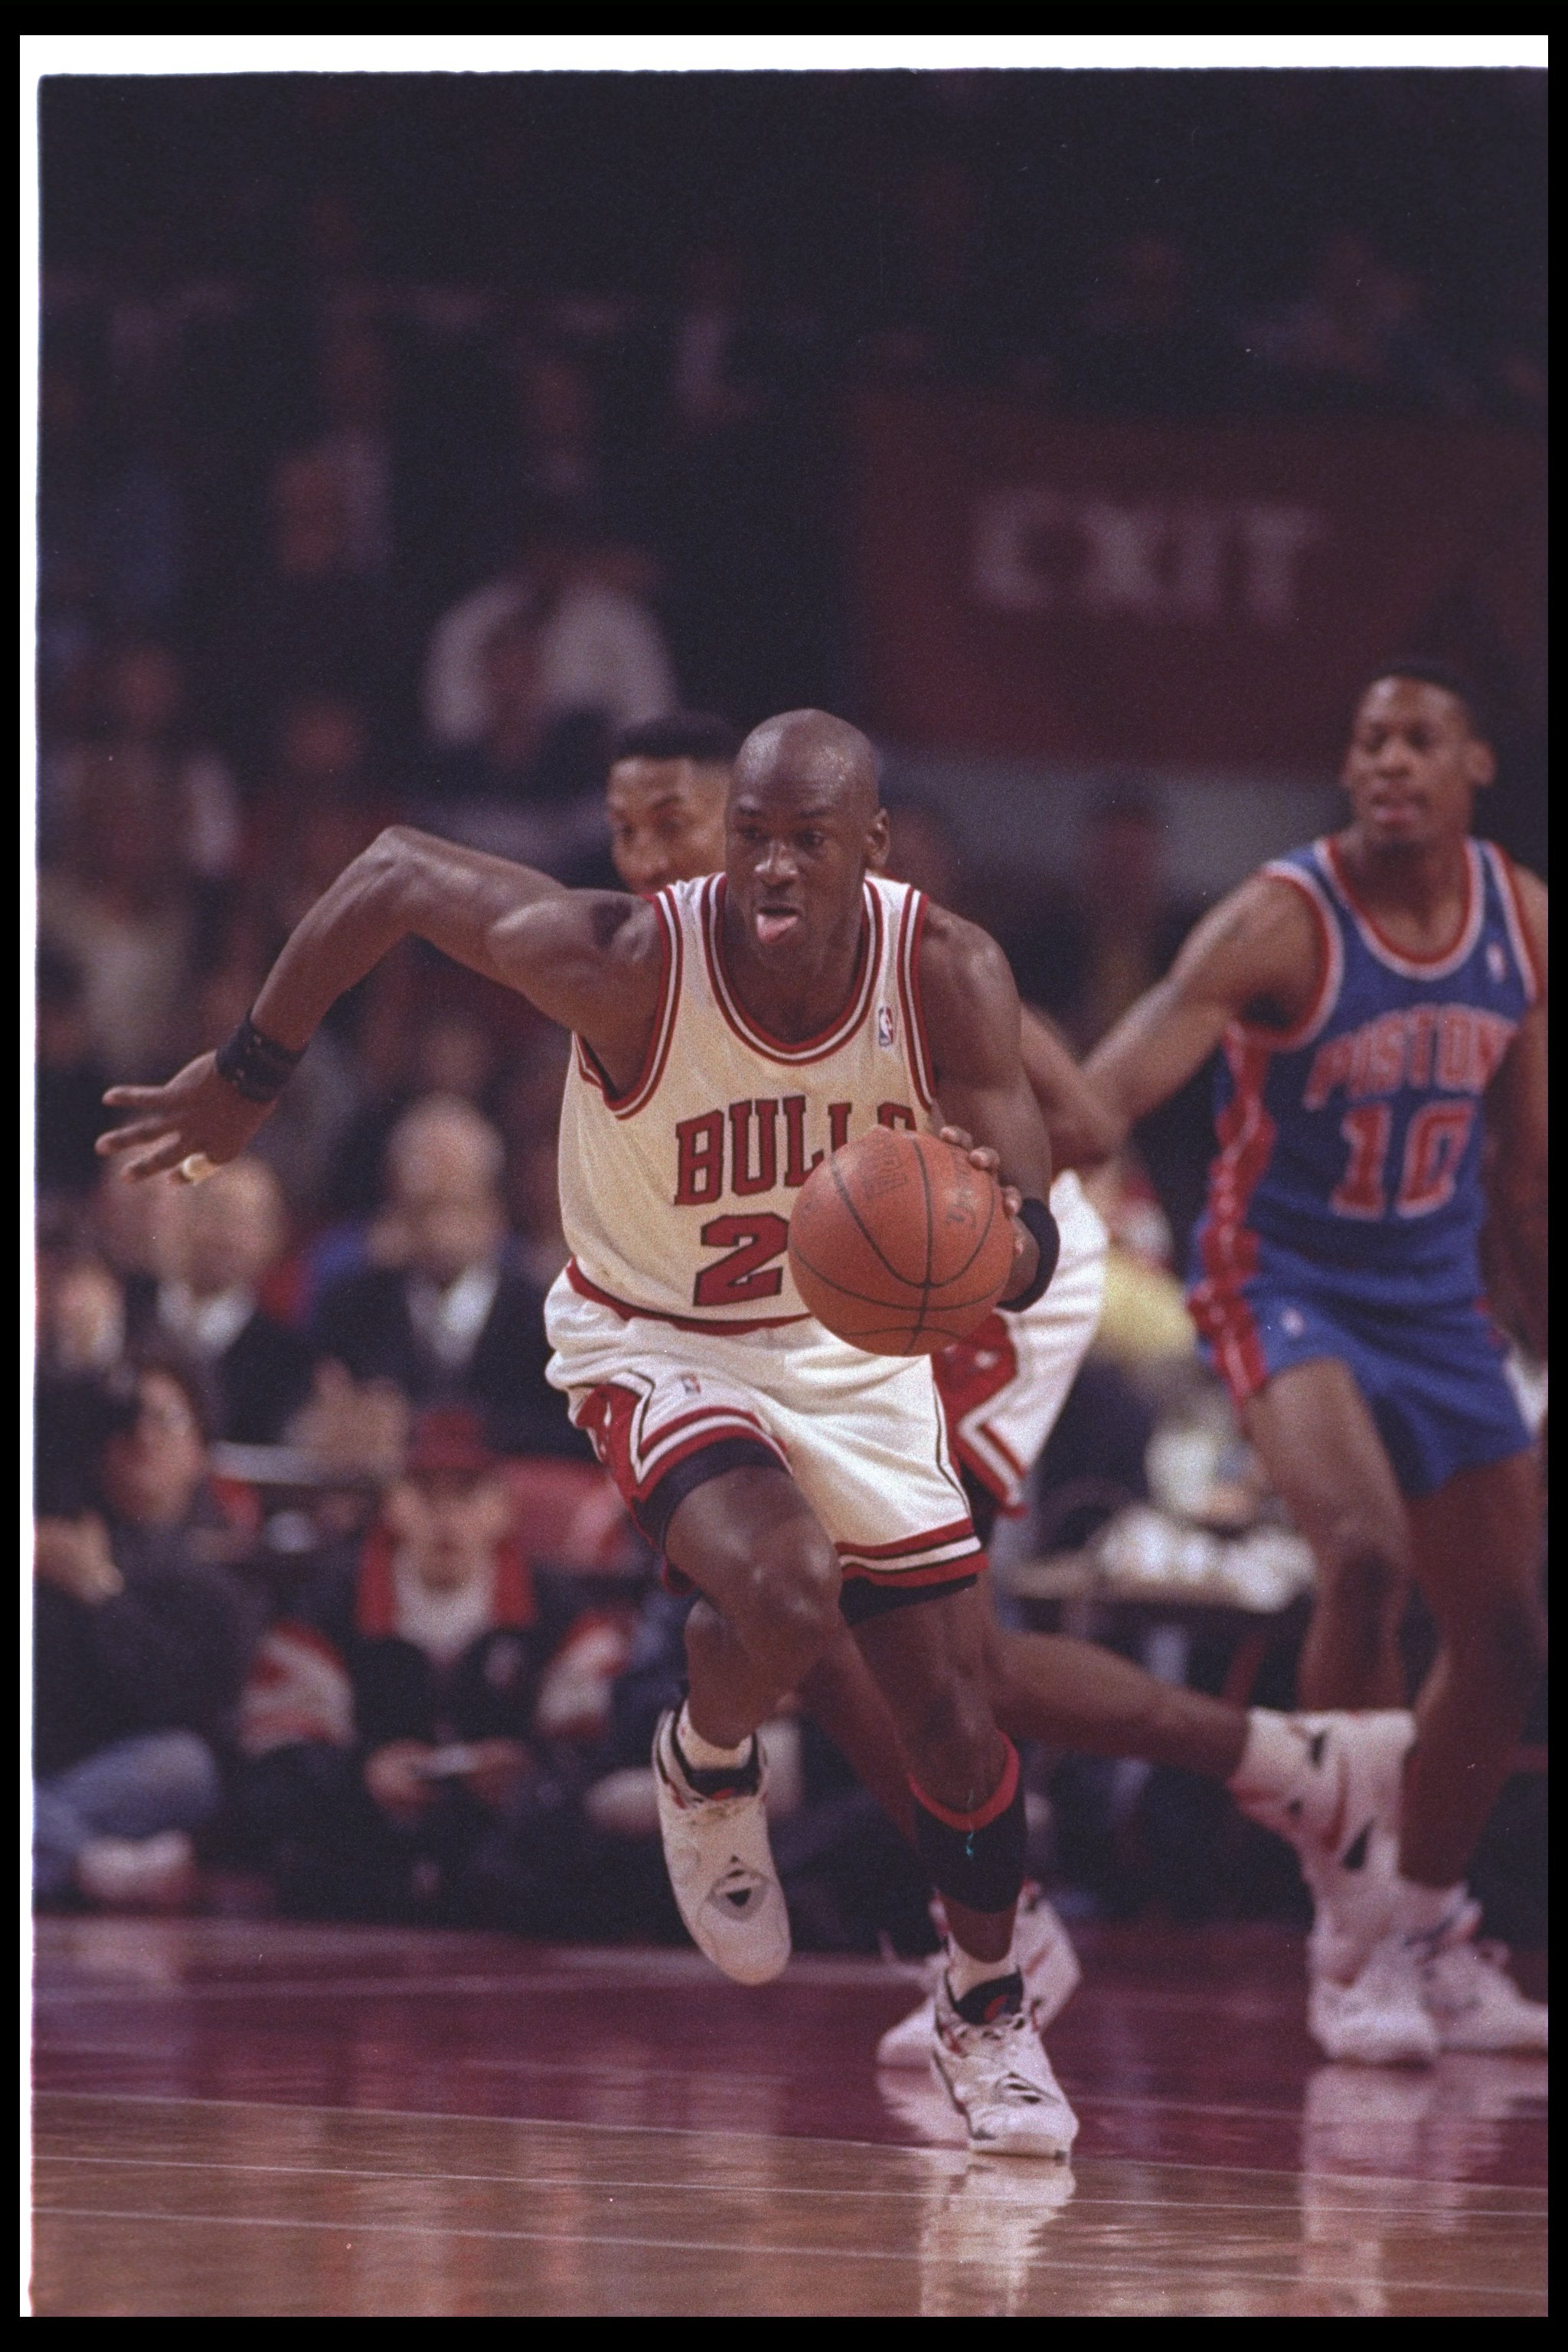 22 Apr 1993:  Guard Michael Jordan #23 of the Chicago Bulls  dribbles the ball hard up the court on a fast break during a game against the Detroit Pistons at the United Center in Chicago, Illinois.  Dennis Rodman from the Detroit Pistons is watching in th